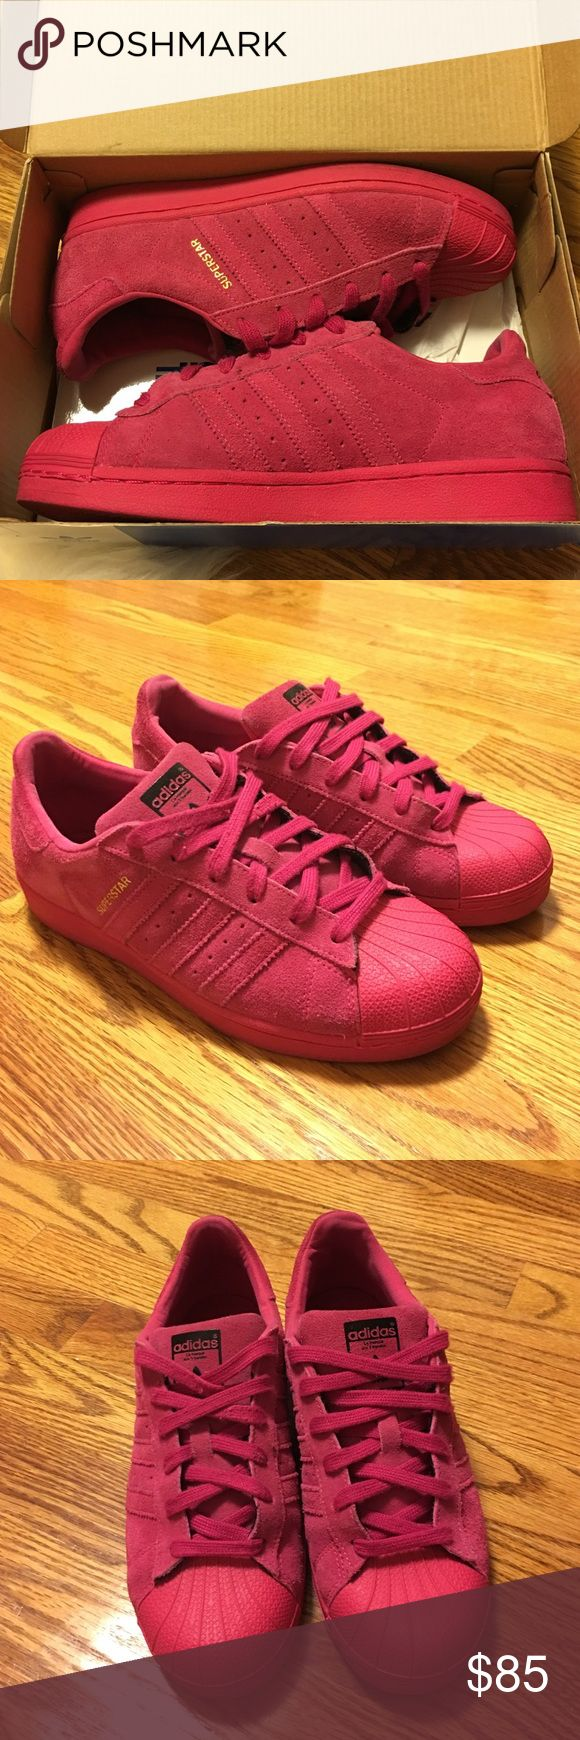 PINK ADIDAS All pink ADIDAS SUPERSTAR Adidas Shoes Sneakers